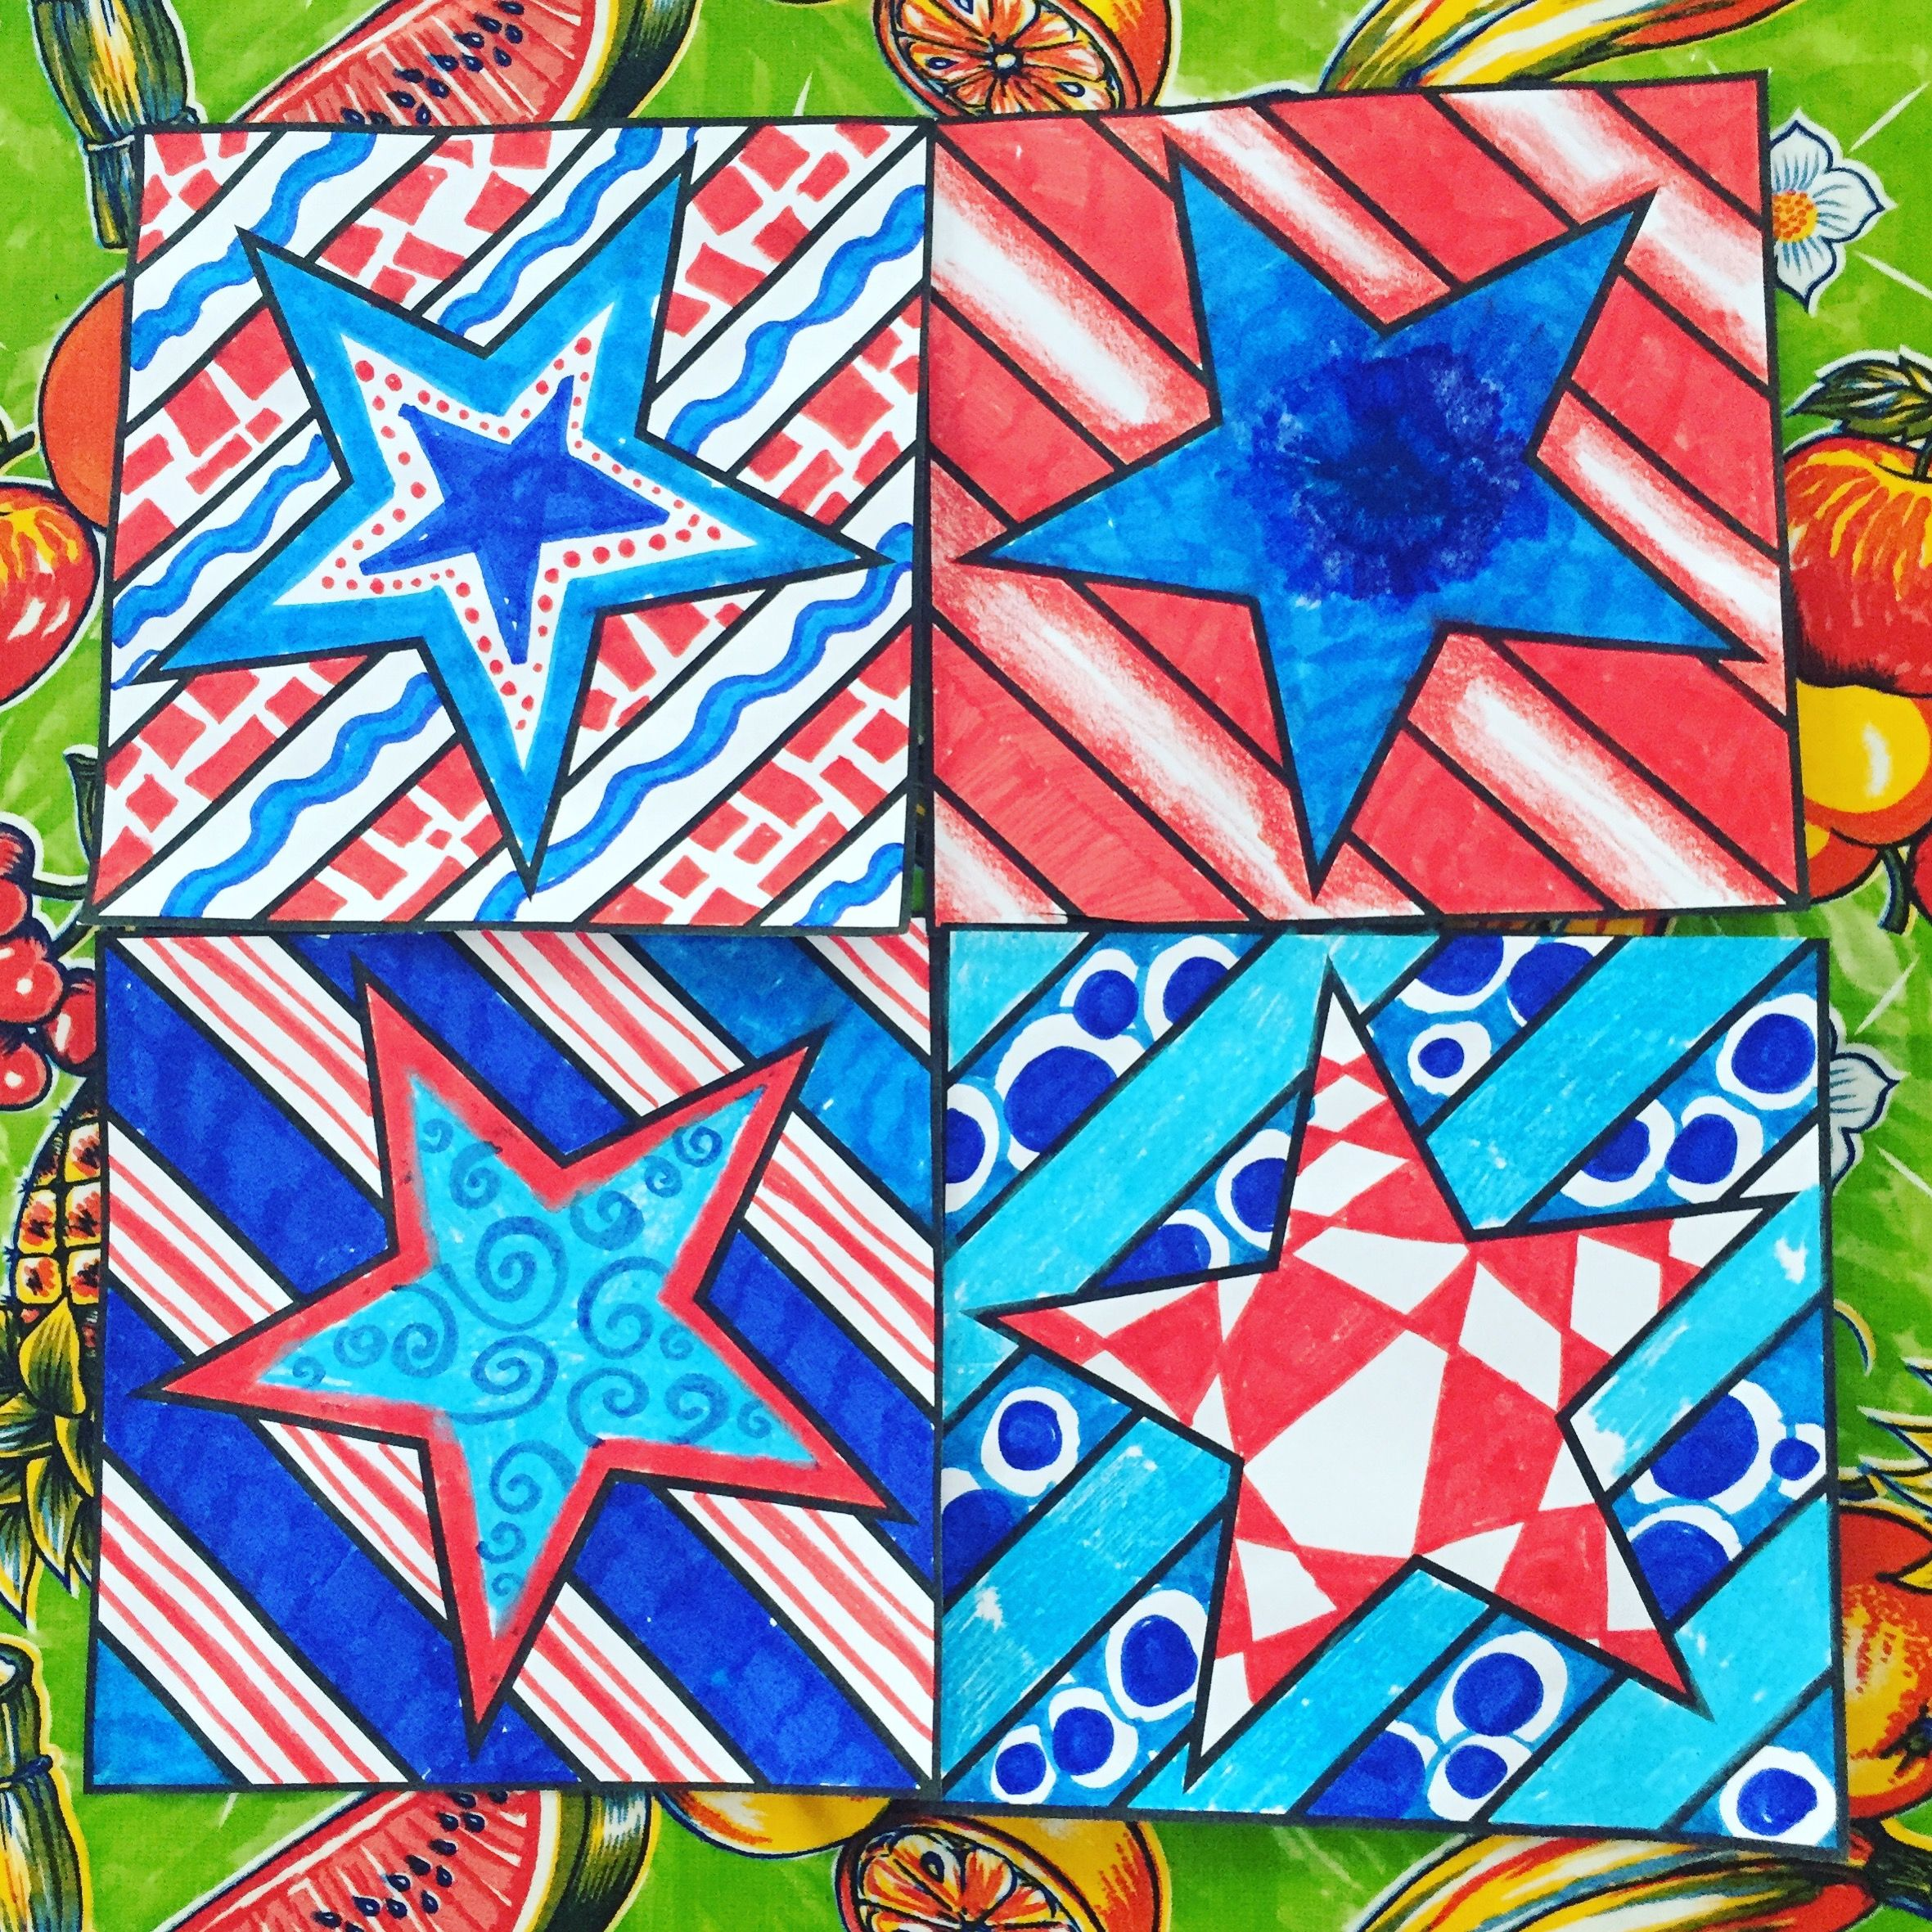 Radial Symmetry 2 Collaborative Activity Coloring Pages